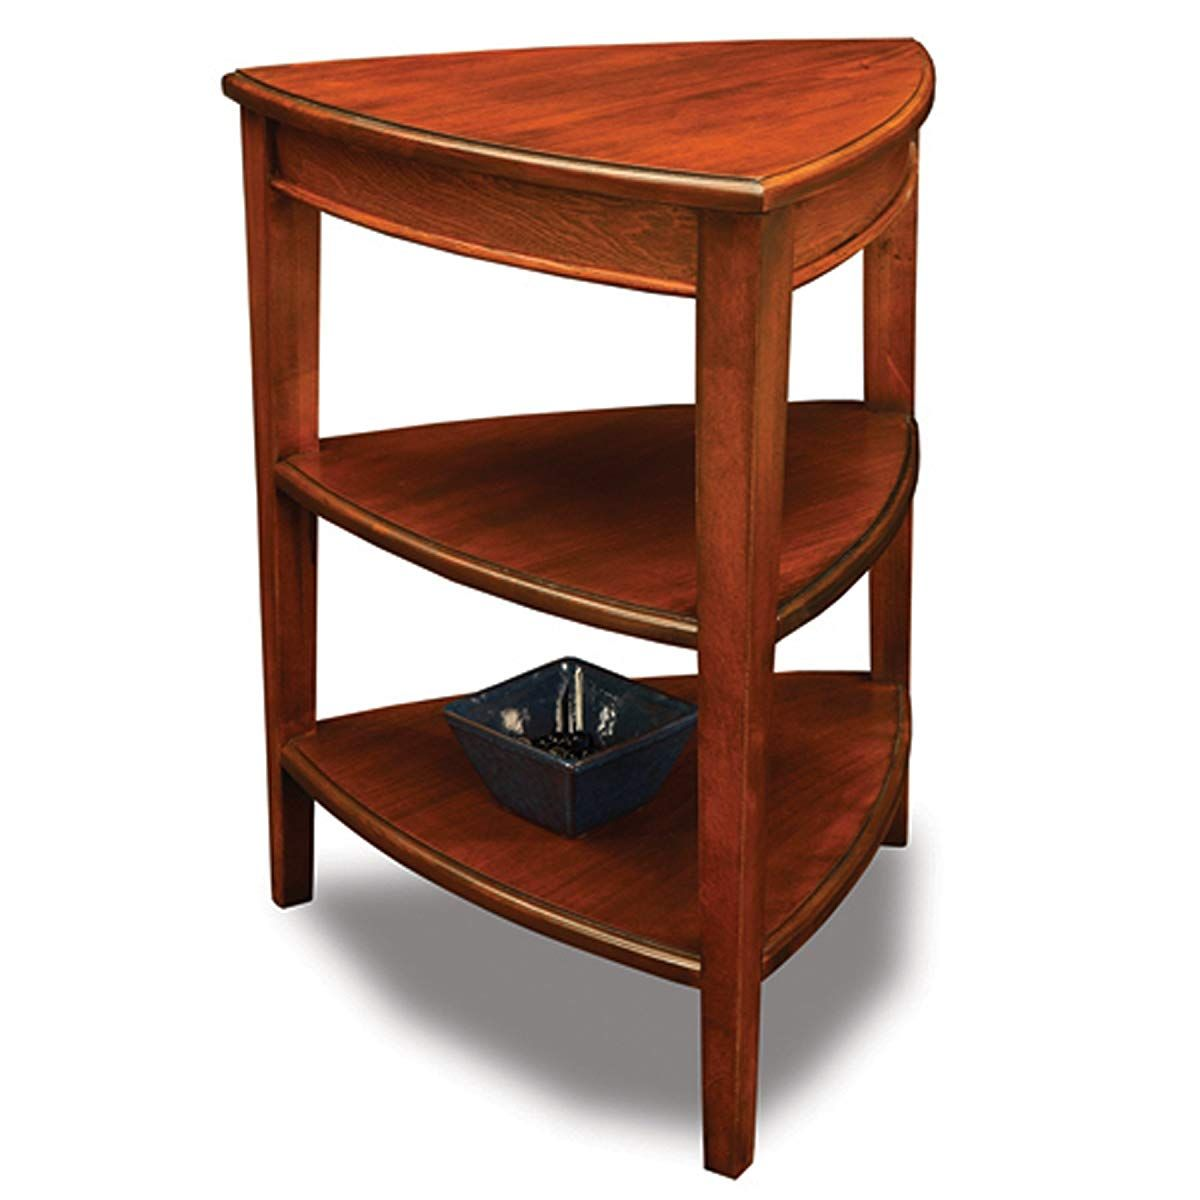 tier corner accent table end side modern half circle entry target round gold lamp pink chandelier small couch wrought iron hairpin coffee breakfast nook west elm cabinet moon